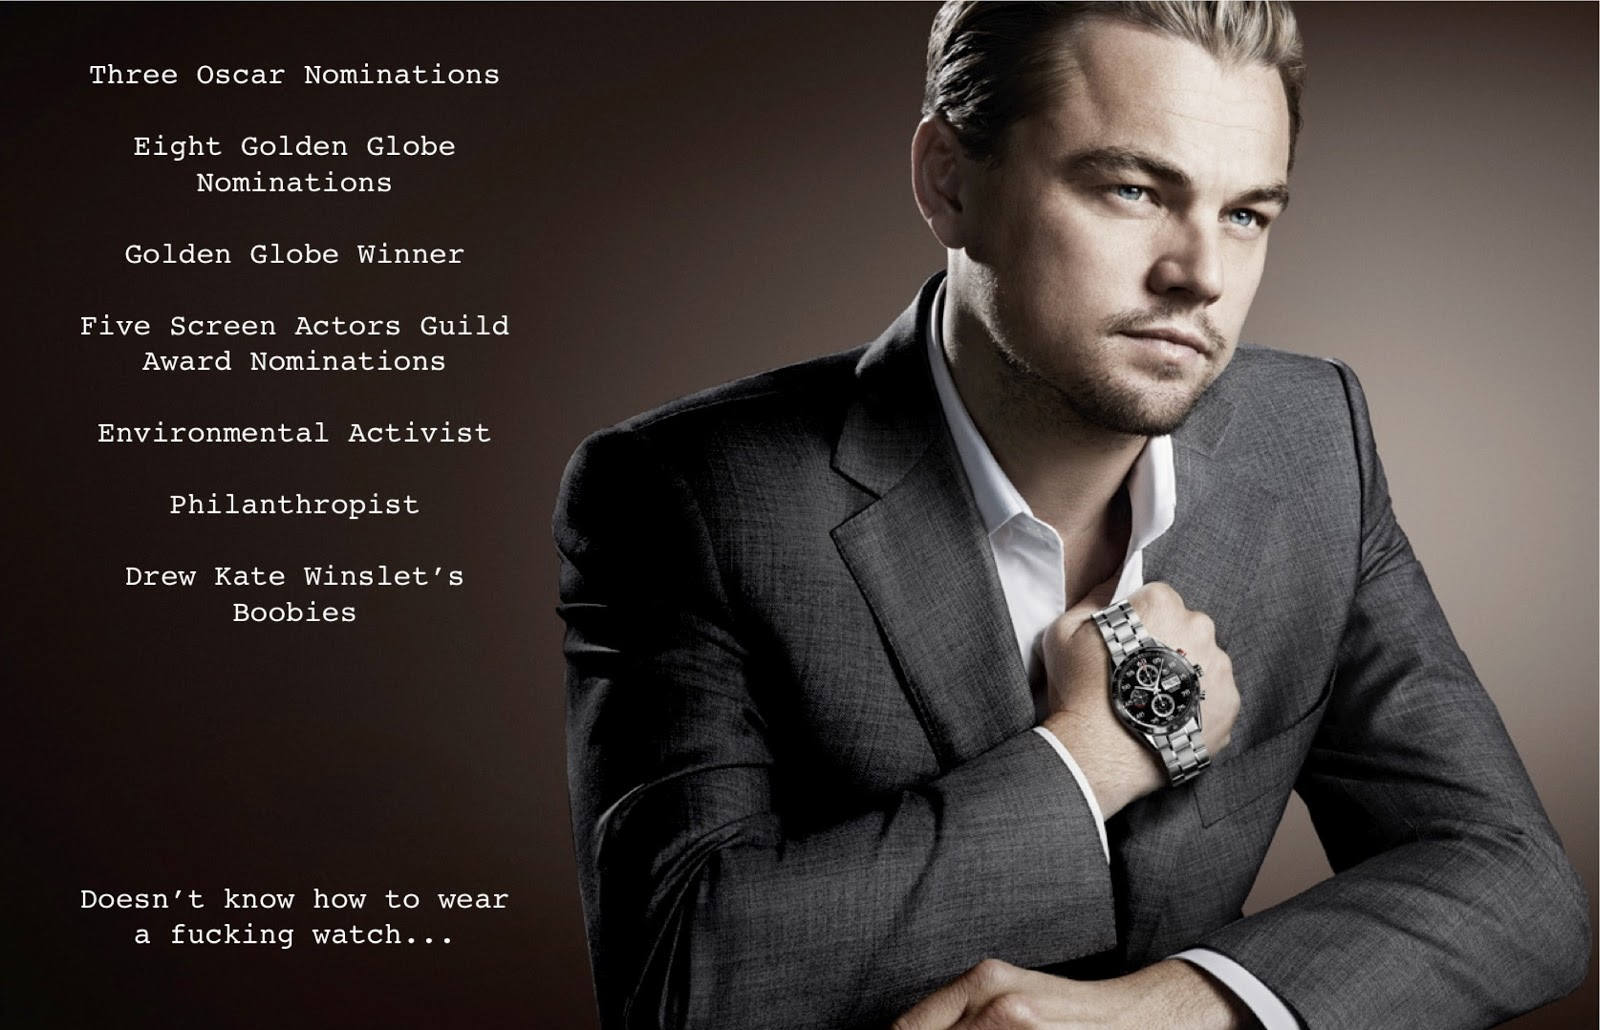 Wall Street Quotes Rich Wisken Writes Leonardo Dicaprio Wears A Watch  Sort Of